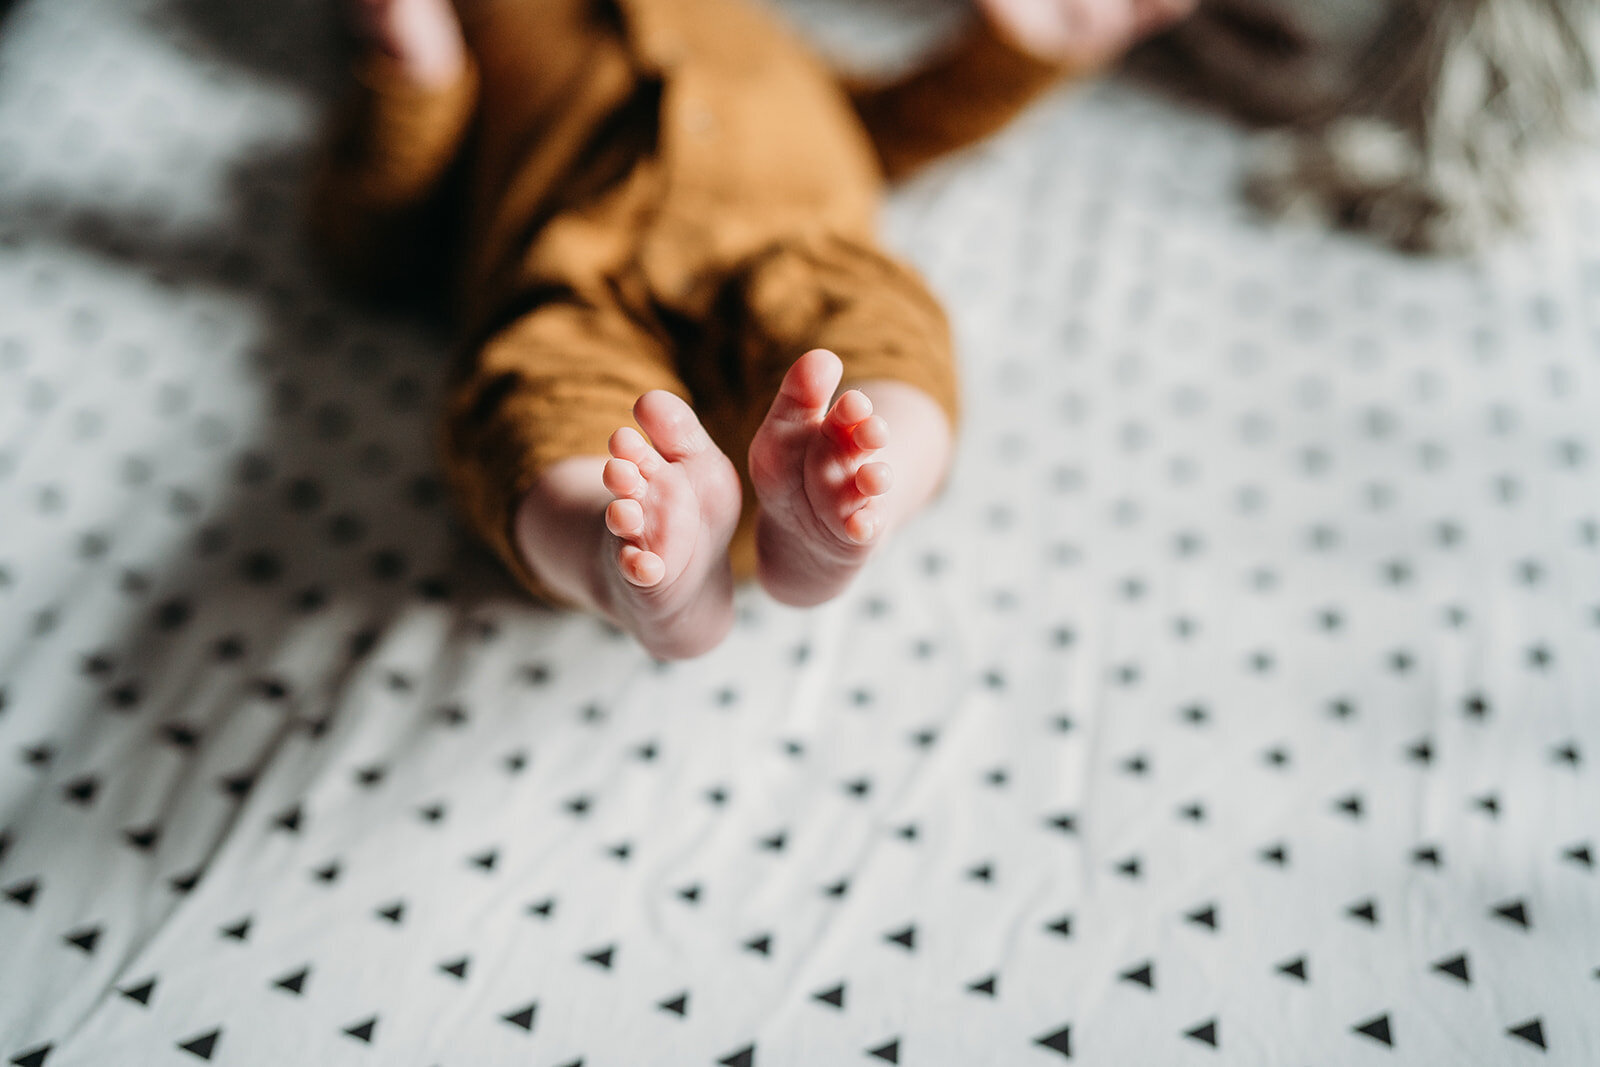 close up picture of baby toes on polka dot crib sheet